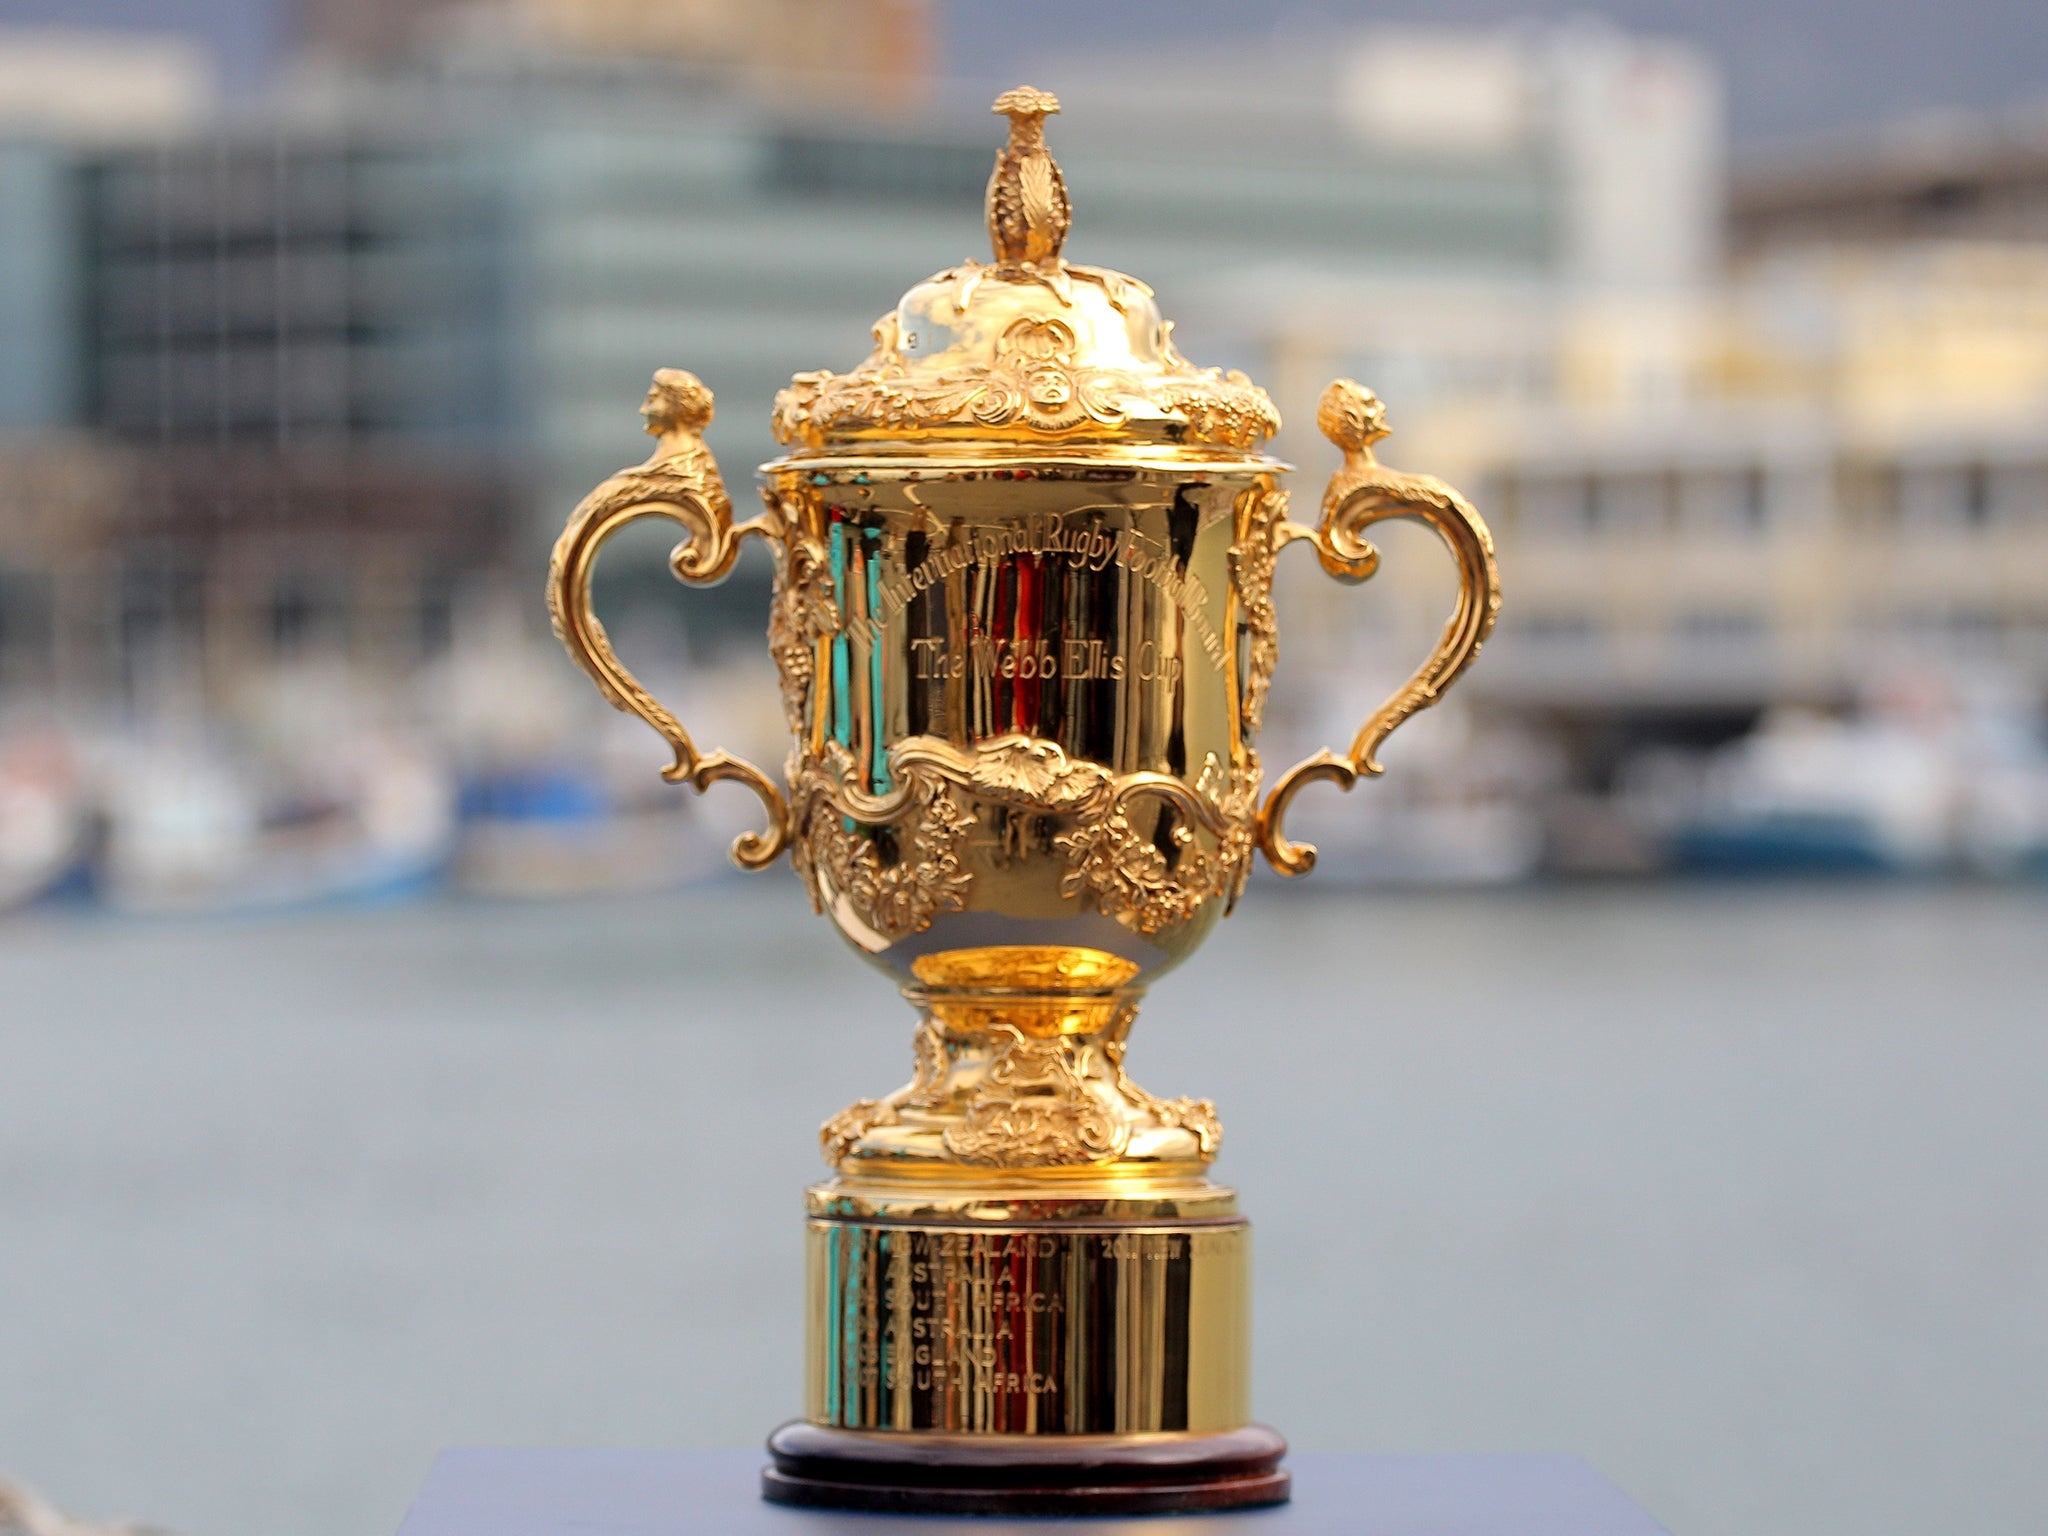 Rugby World Cup 2015: Pool-by-pool guide to the tournament | The Independentindependent_brand_ident_LOGOUntitled